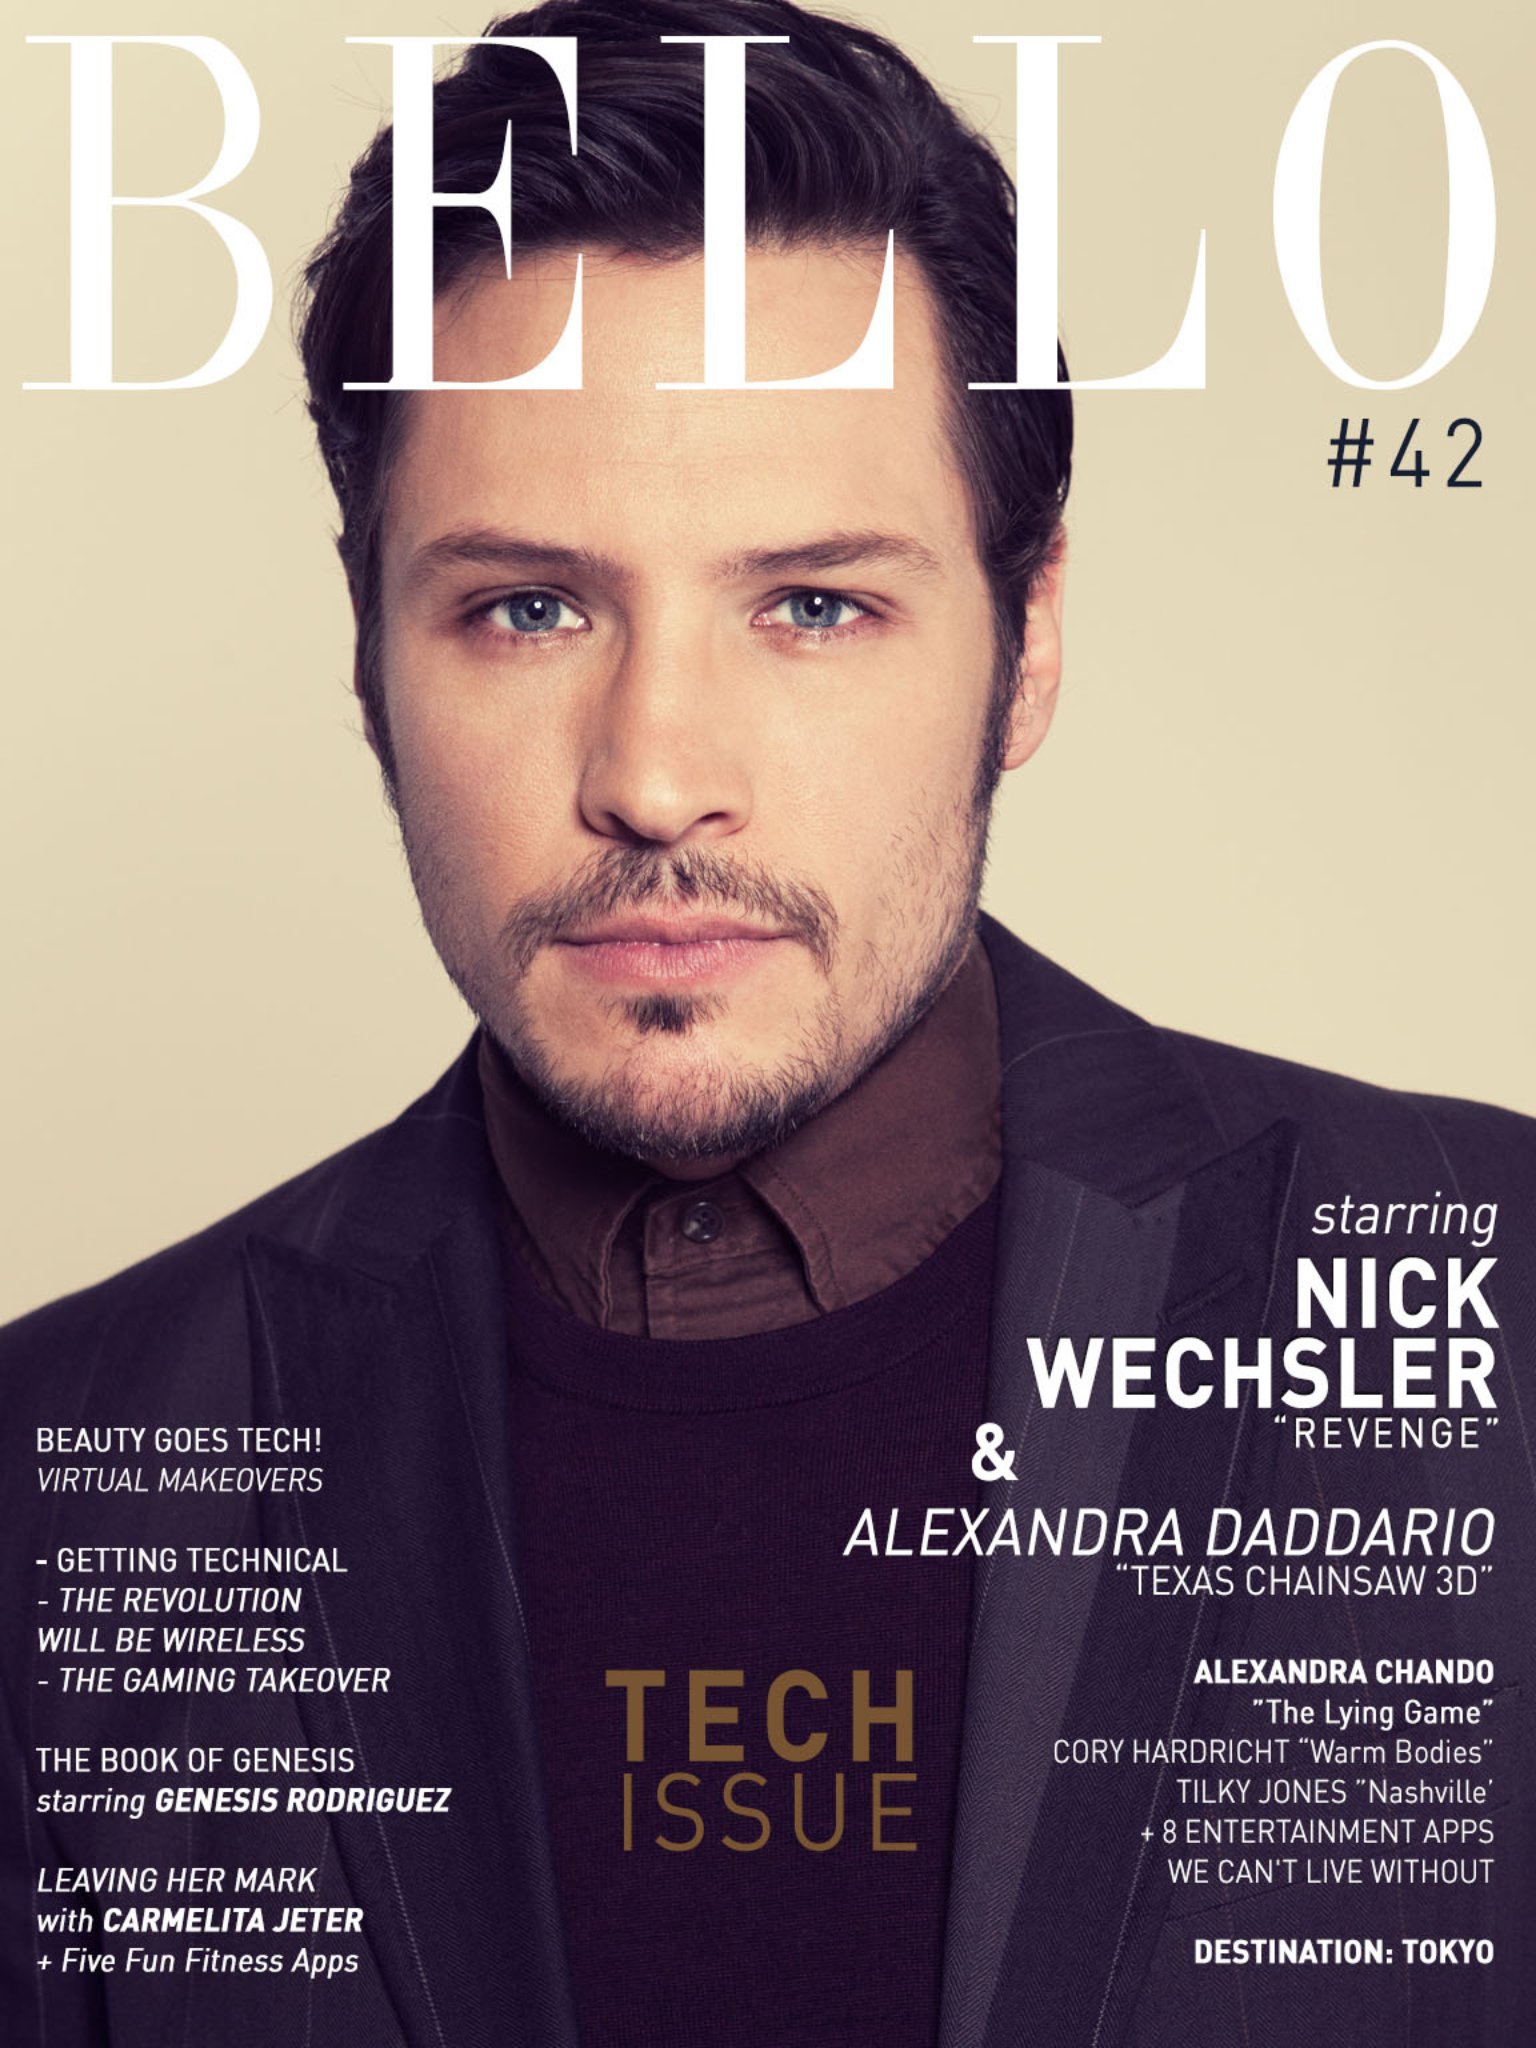 NICK WECHSLER MATHIAS COVER.PNG